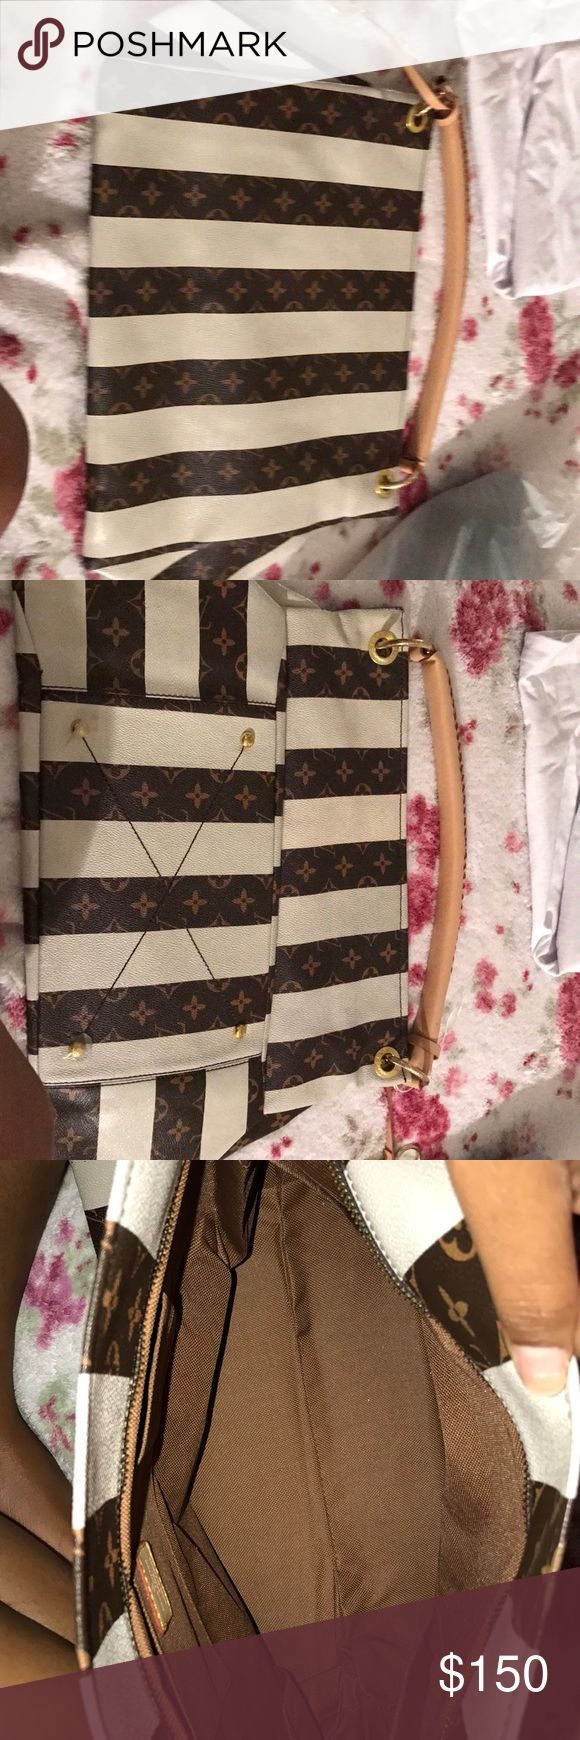 Lv bag Medium sixes bag . Never used great condition. Can be used for travel or every day use . Louis Vuitton Bags Shoulder Bags